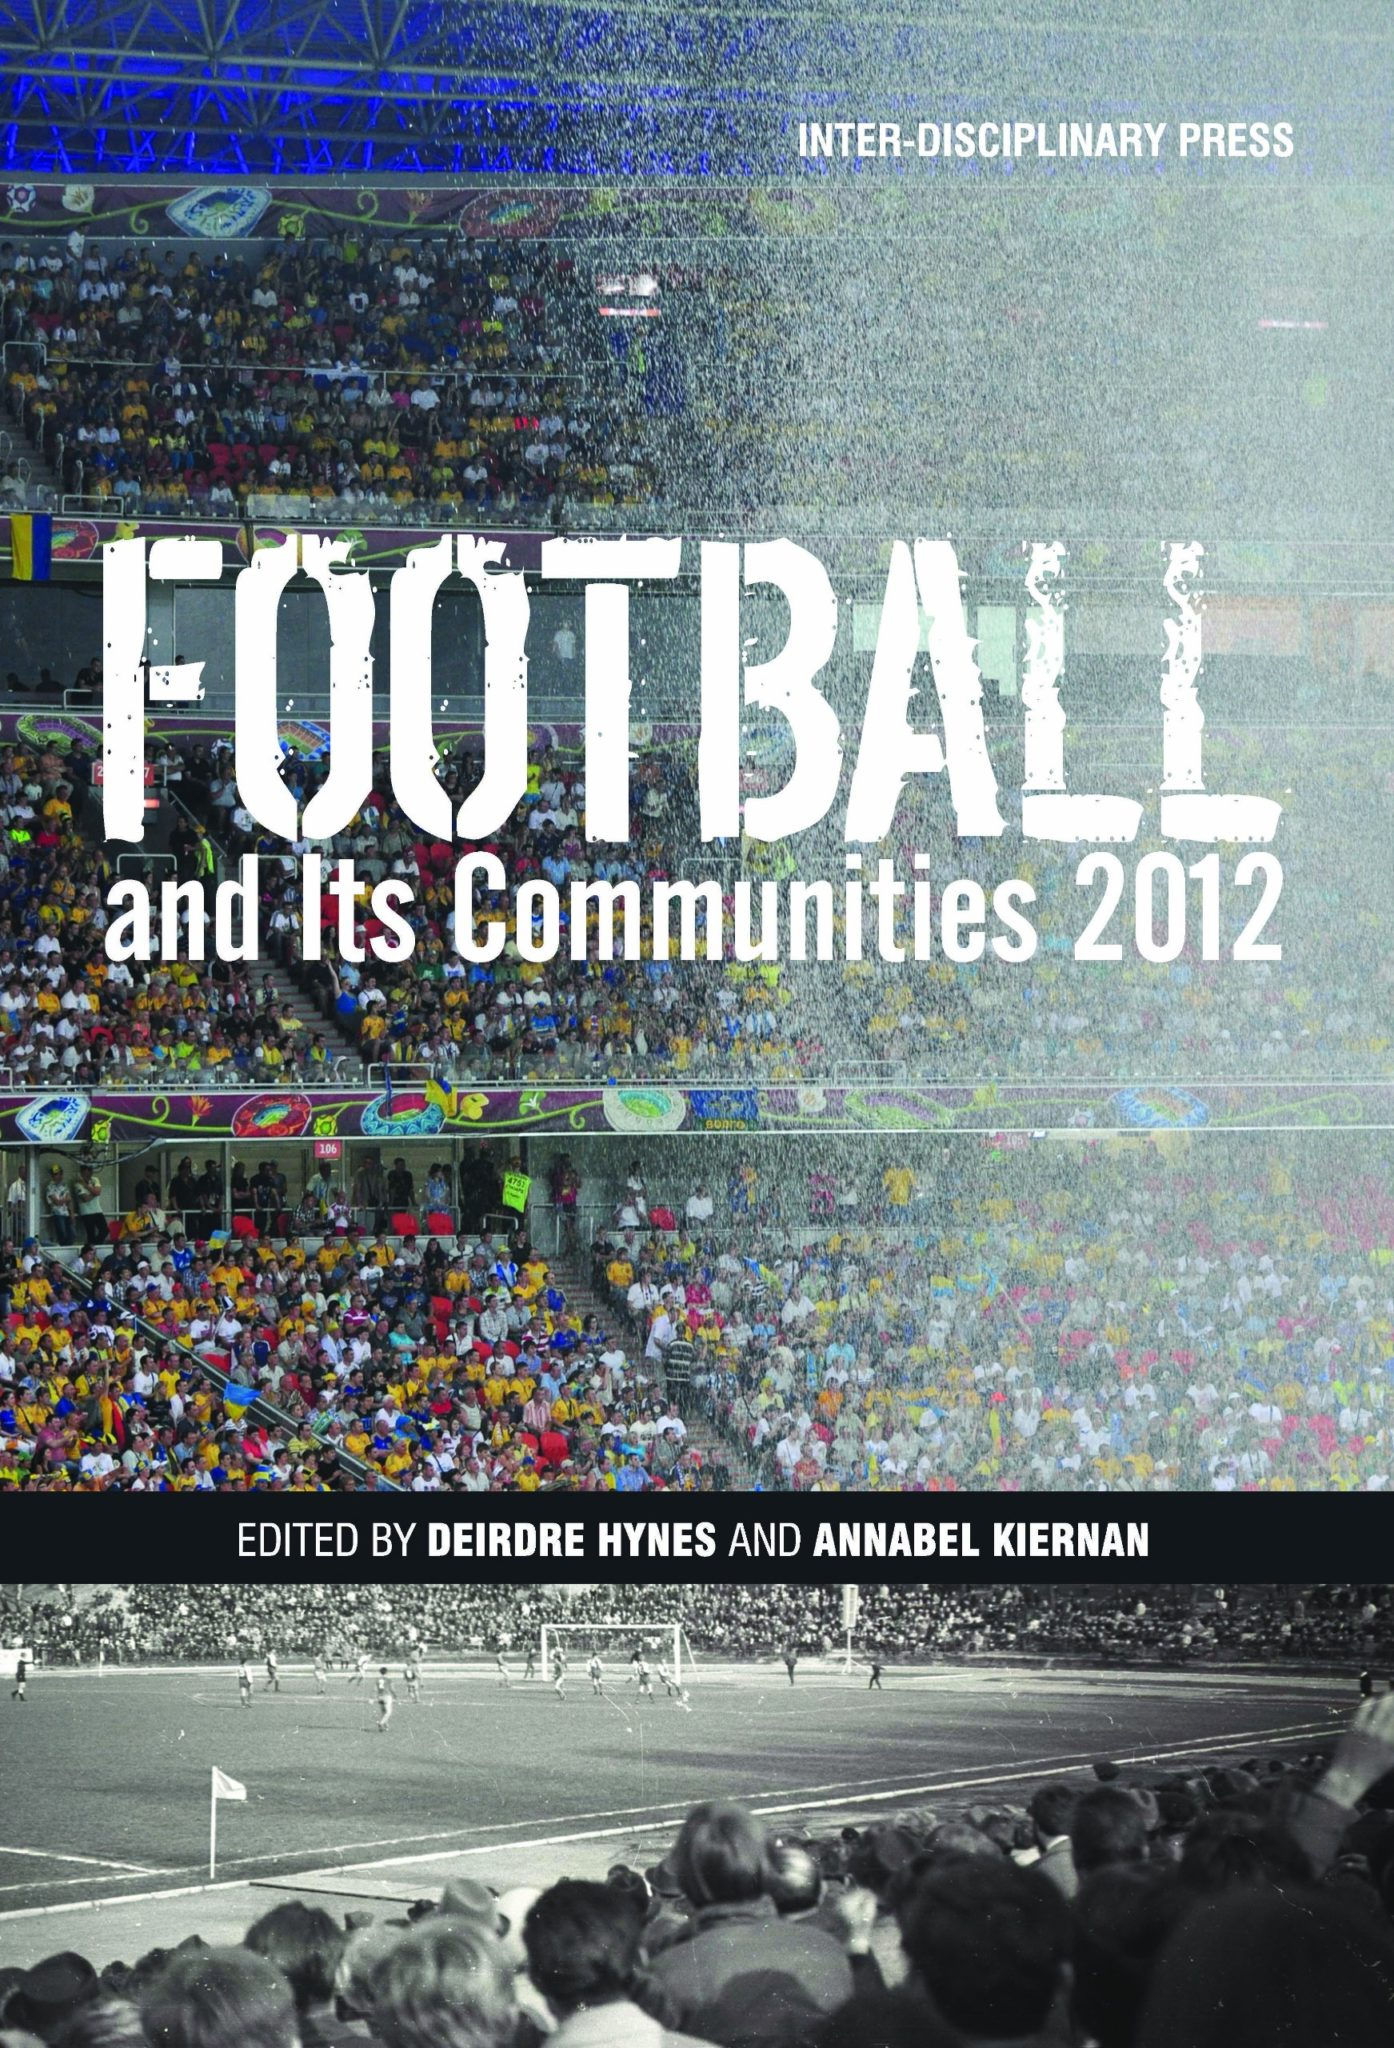 Football and its Communities 2012